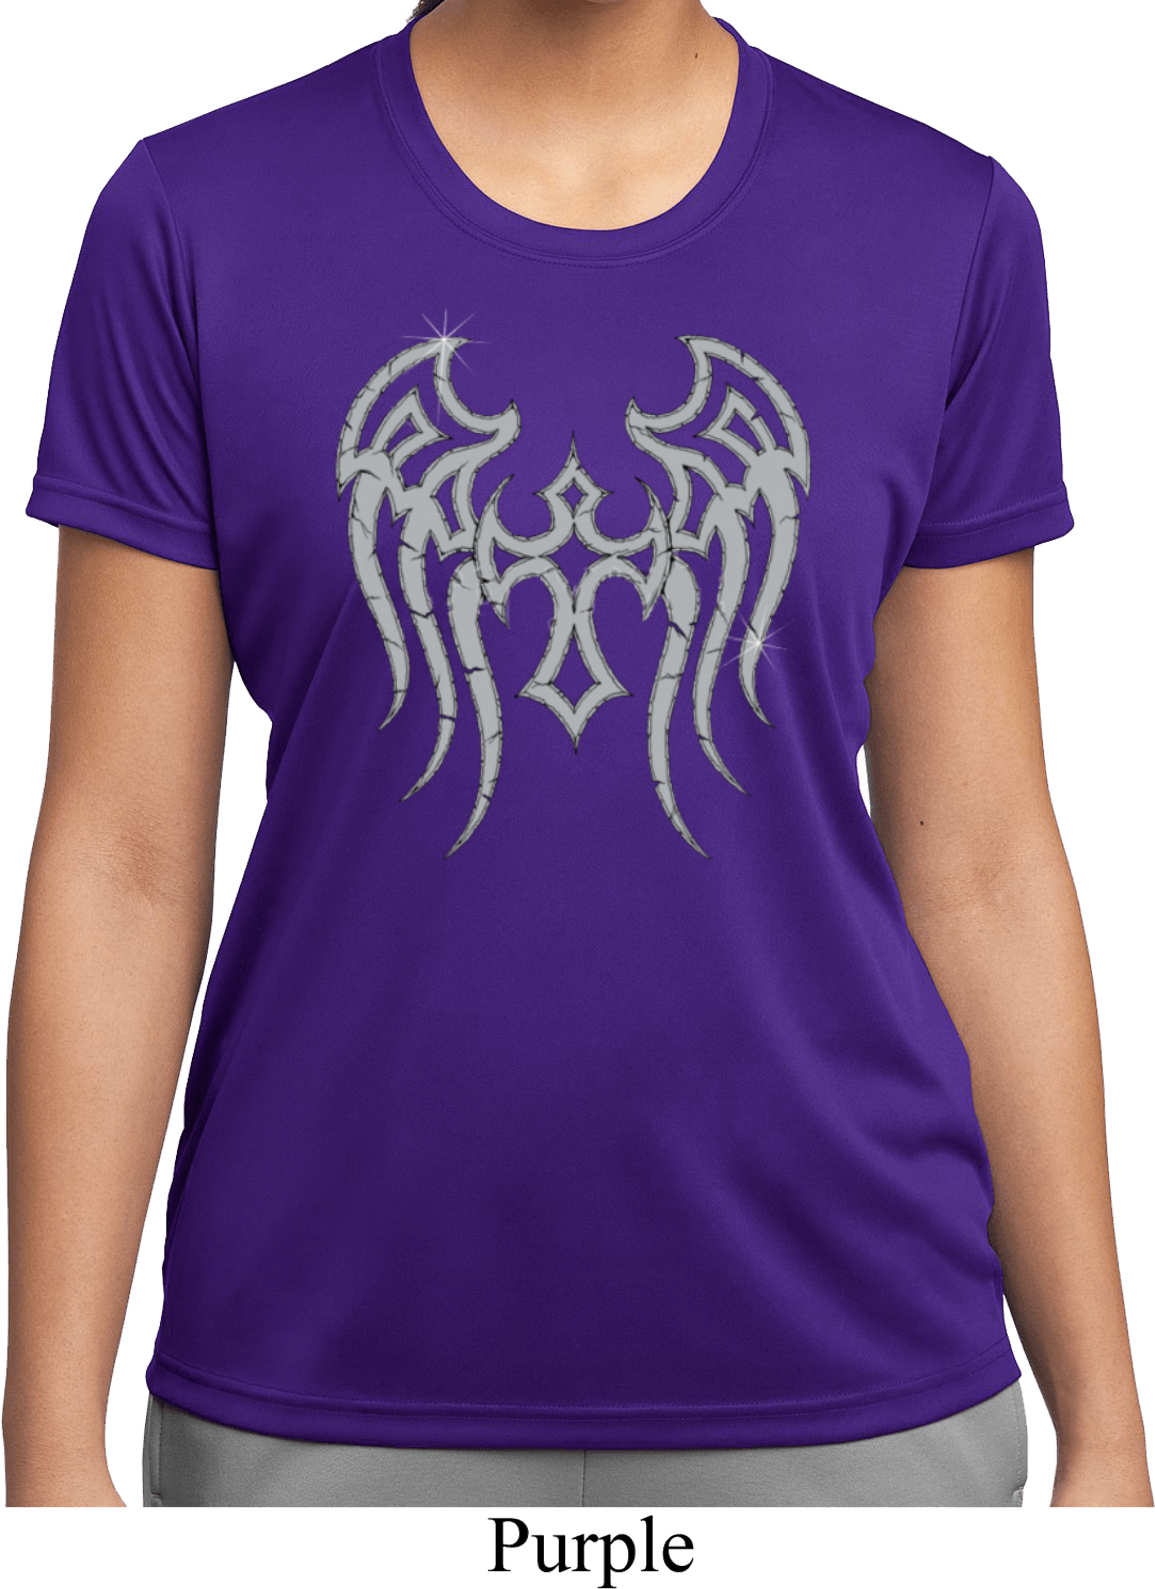 Ladies shirt cross wings moisture wicking tee t shirt for Sweat wicking t shirts